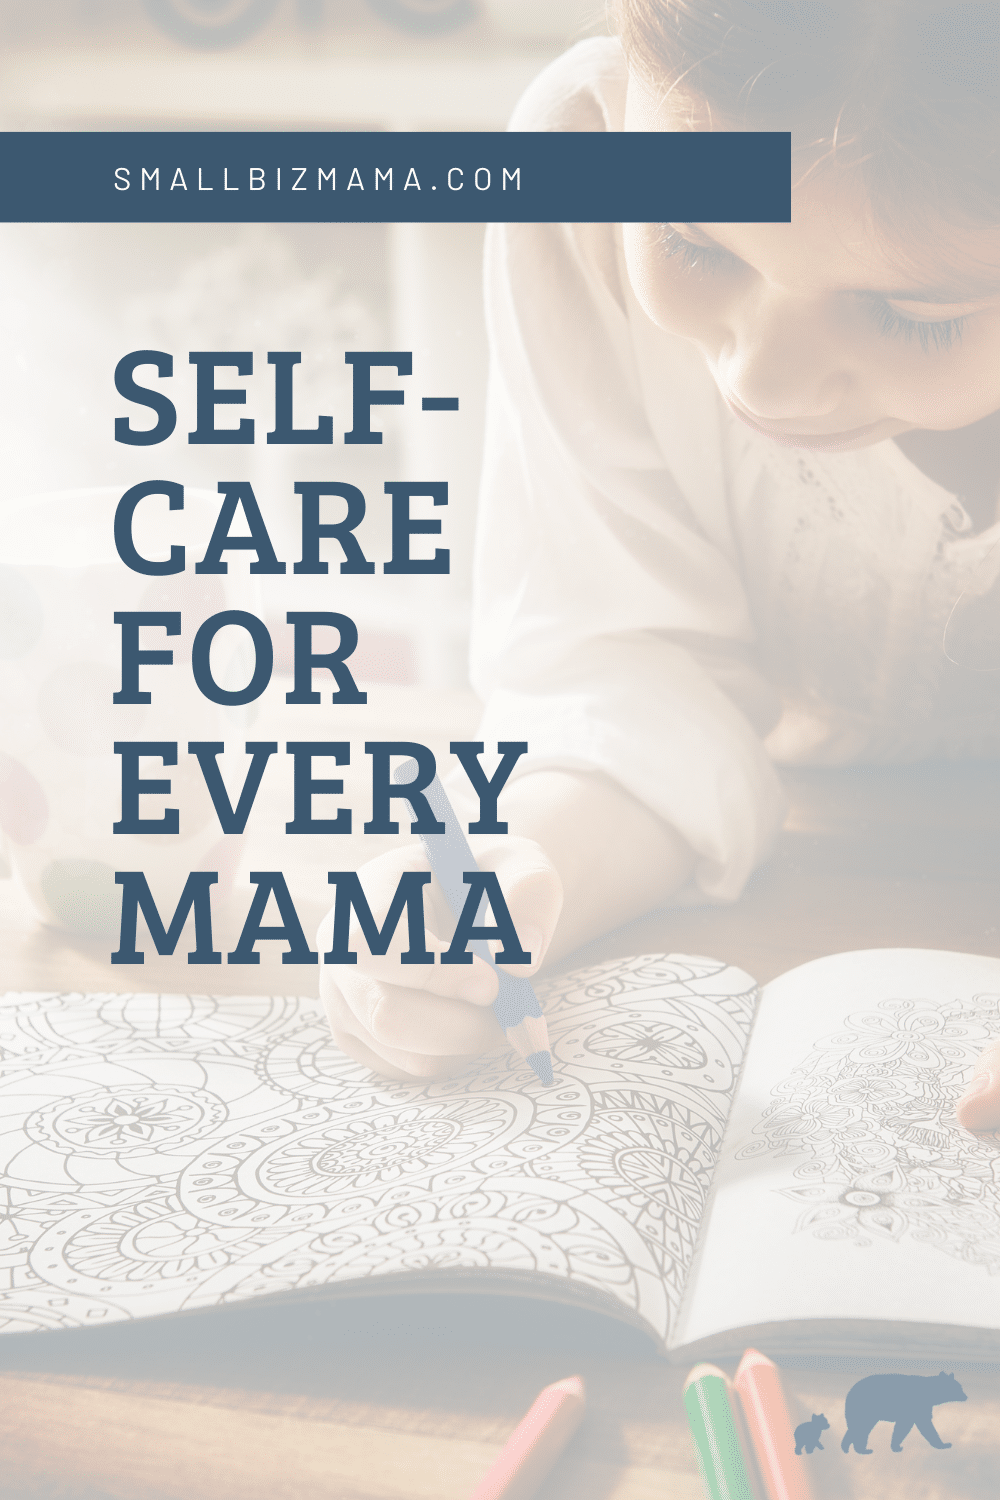 Self-care for every mama